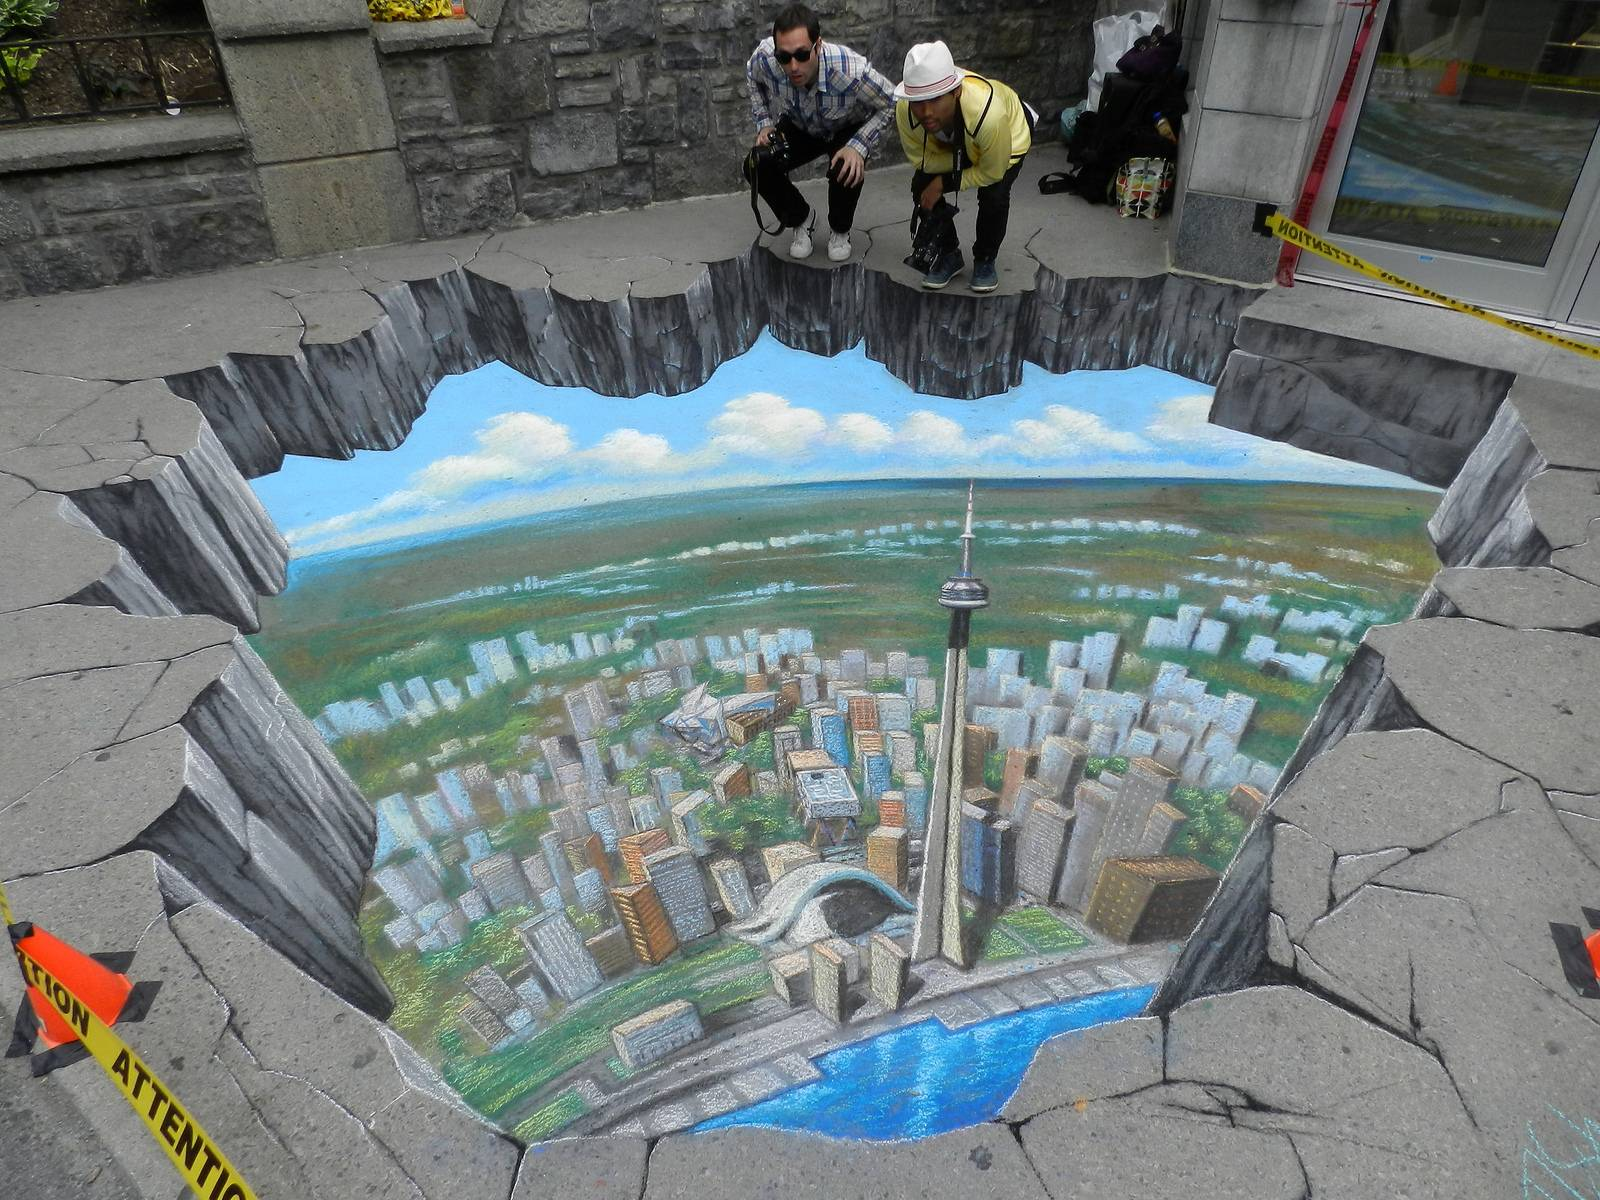 Incredible D Street Art Works From The Worlds Best Street - 17 amazing works of 3d street art